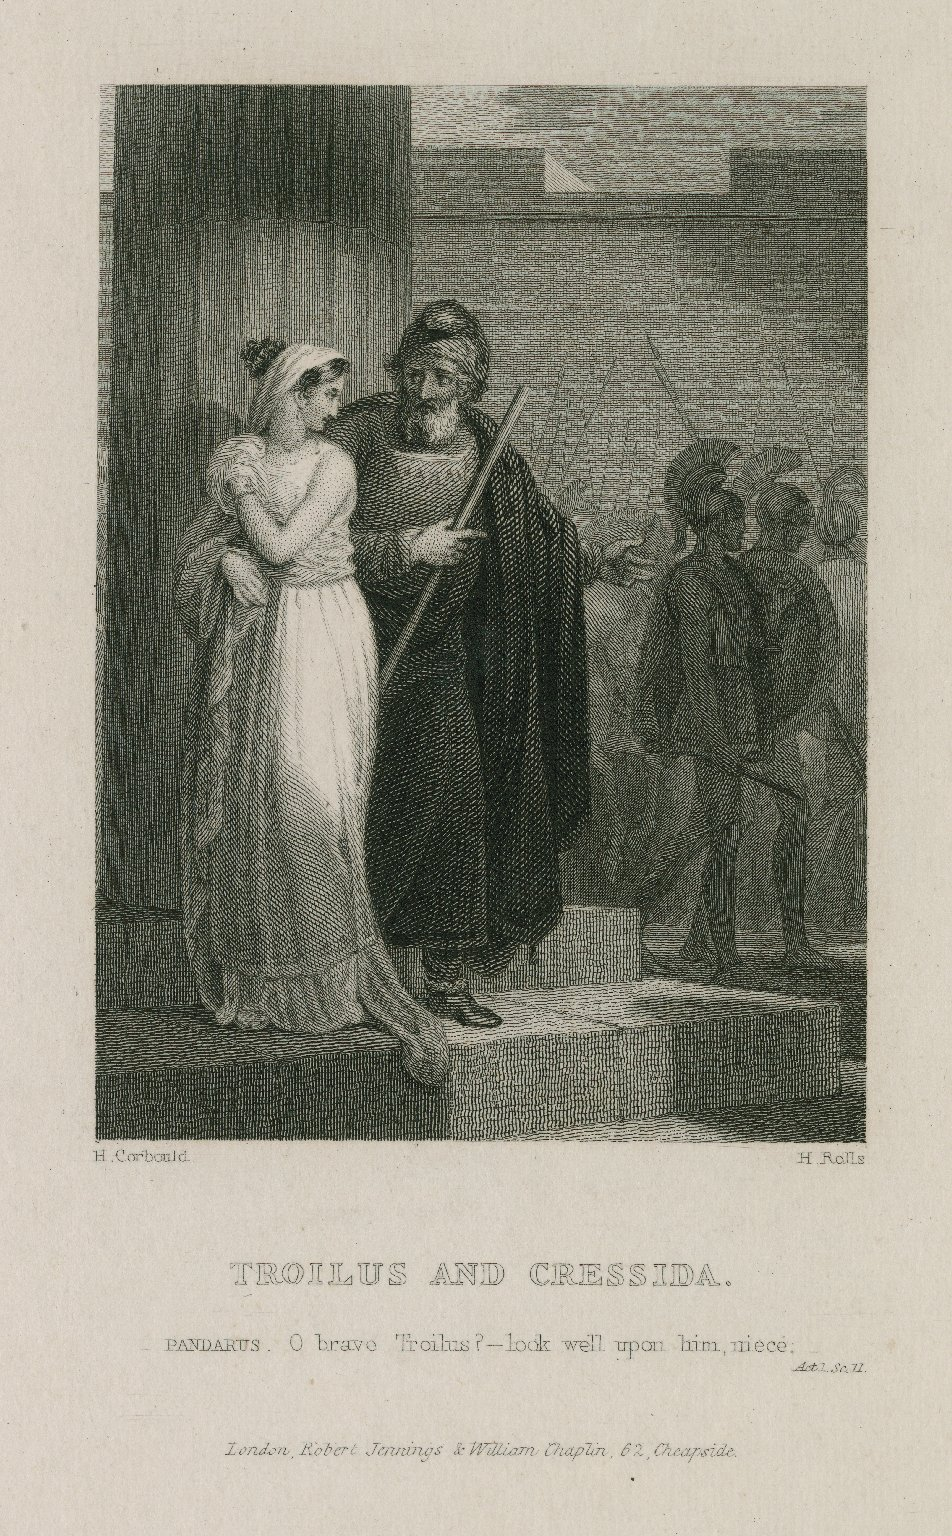 Troilus and Cressida, Pandarus: O brave Troilus? look well upon him, niece, act 1, sc. 2 [graphic] / H. Corbould ; H. Rolls.